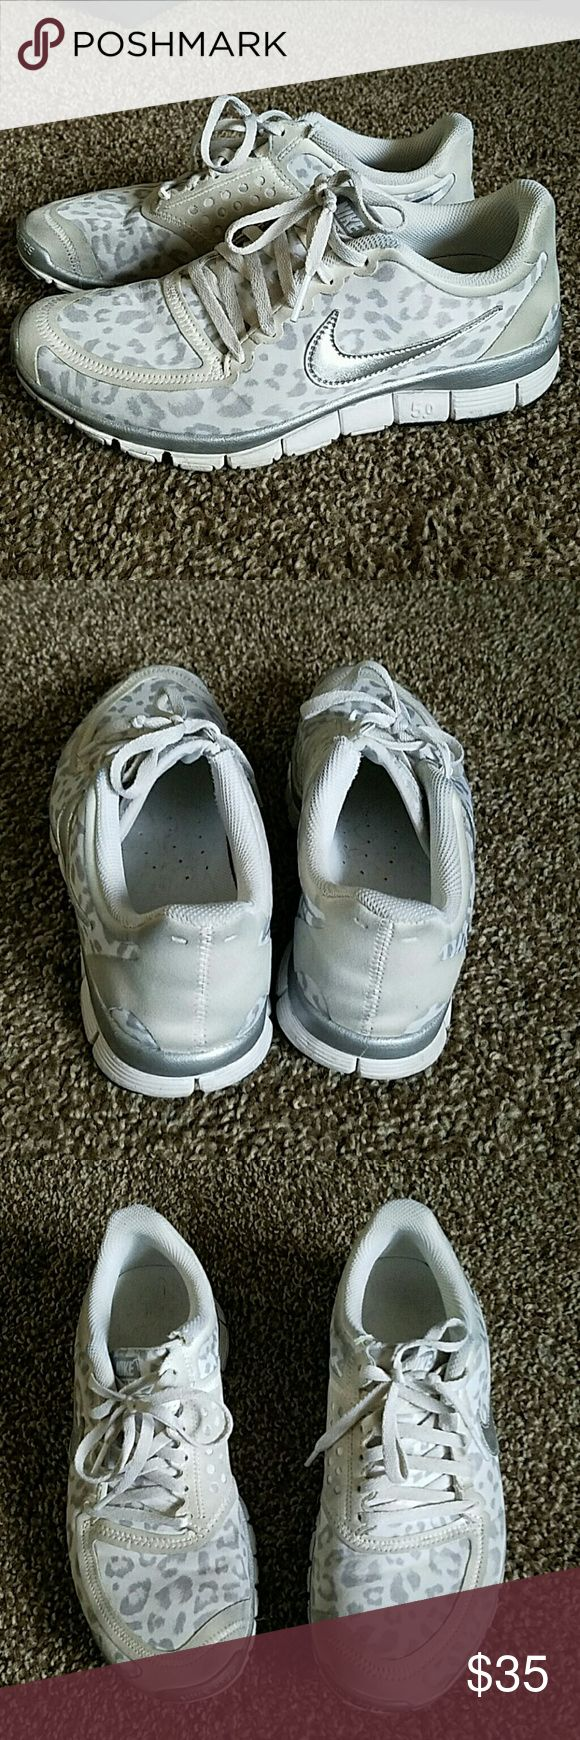 Leopard nikes In good used condition - these are a little dirty. Nike Shoes Athletic Shoes